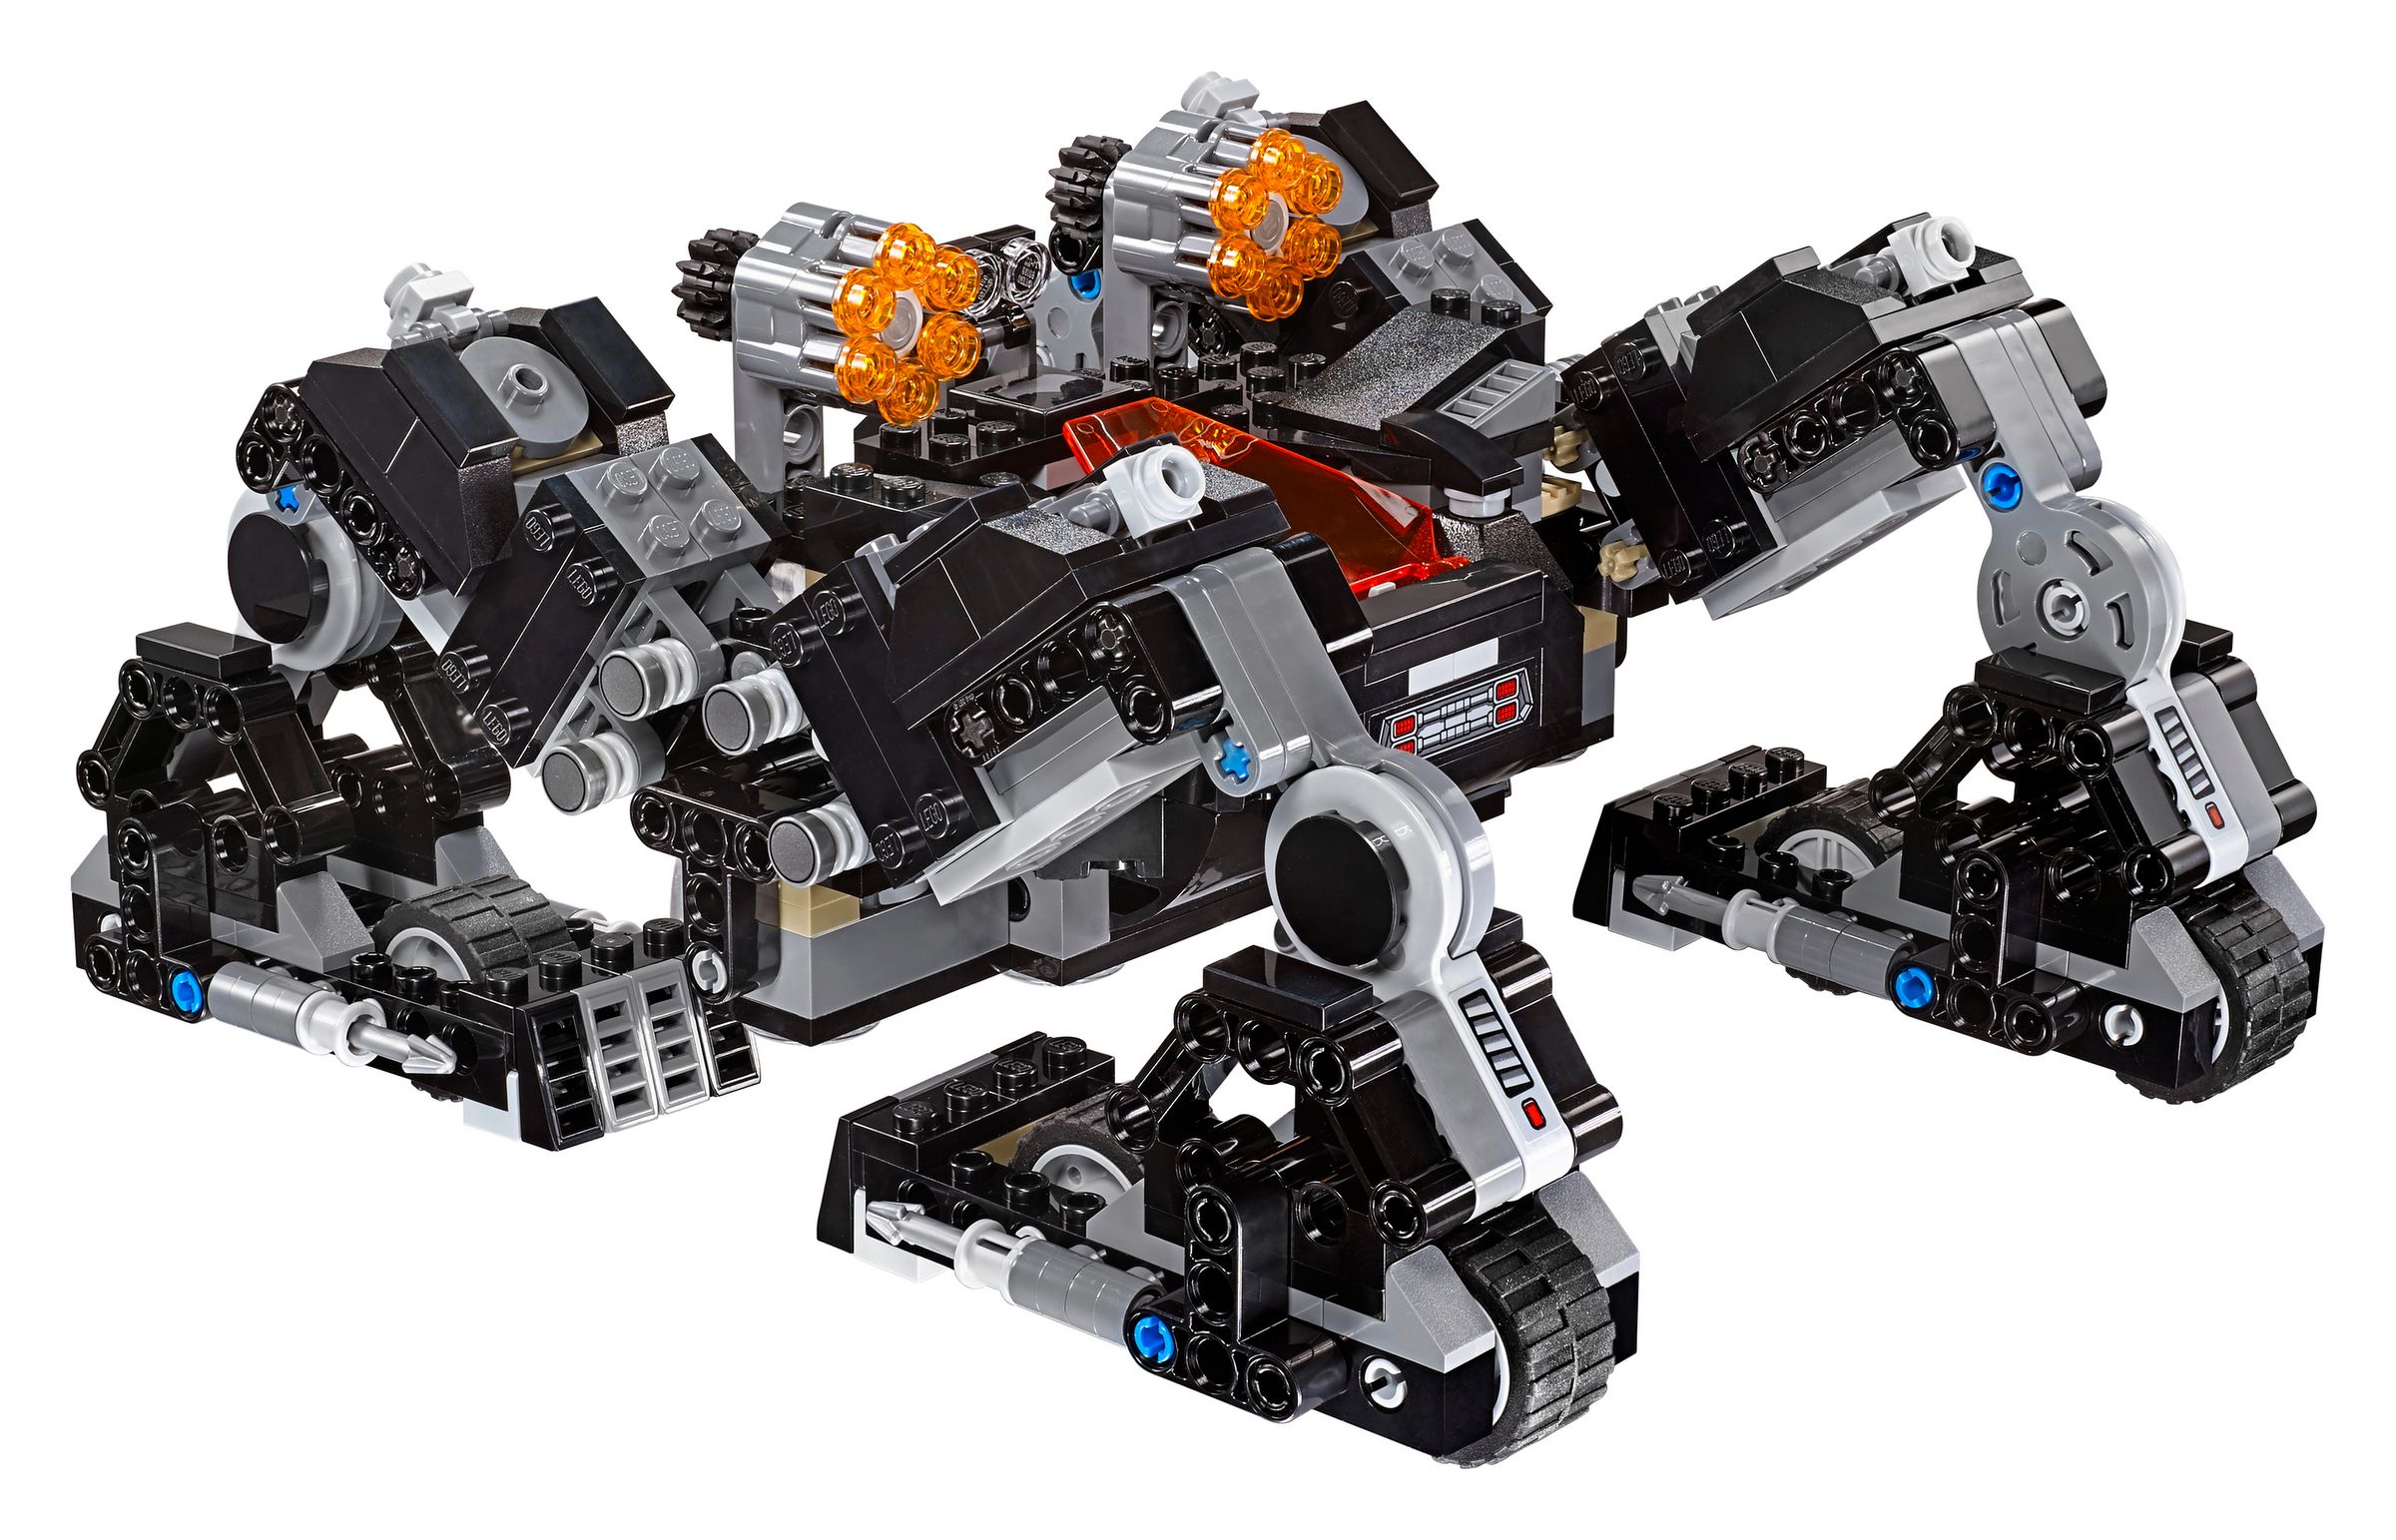 LEGO Super Heroes 76086 Knightcrawlers Tunnel-Attacke LEGO_76086_alt4.jpg